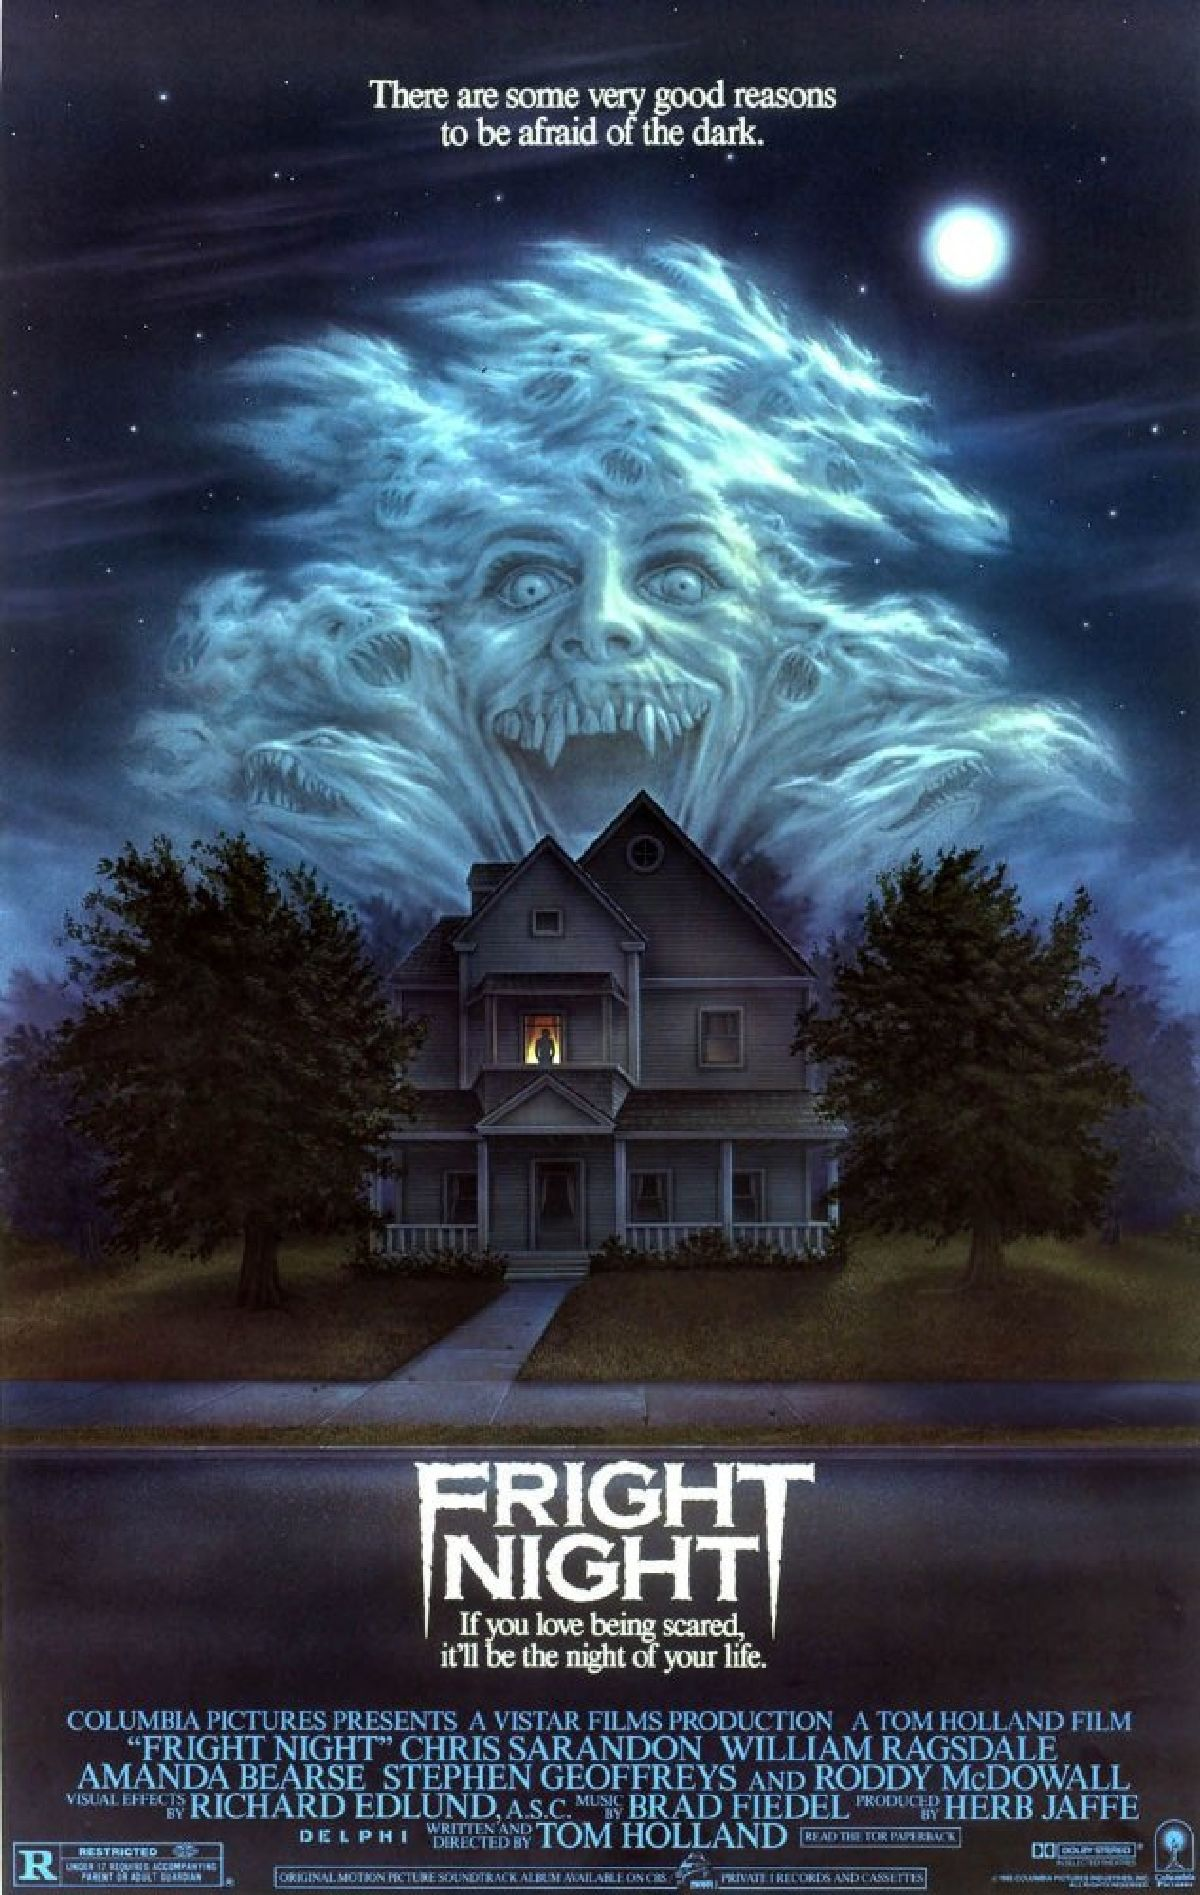 'Fright Night' movie poster